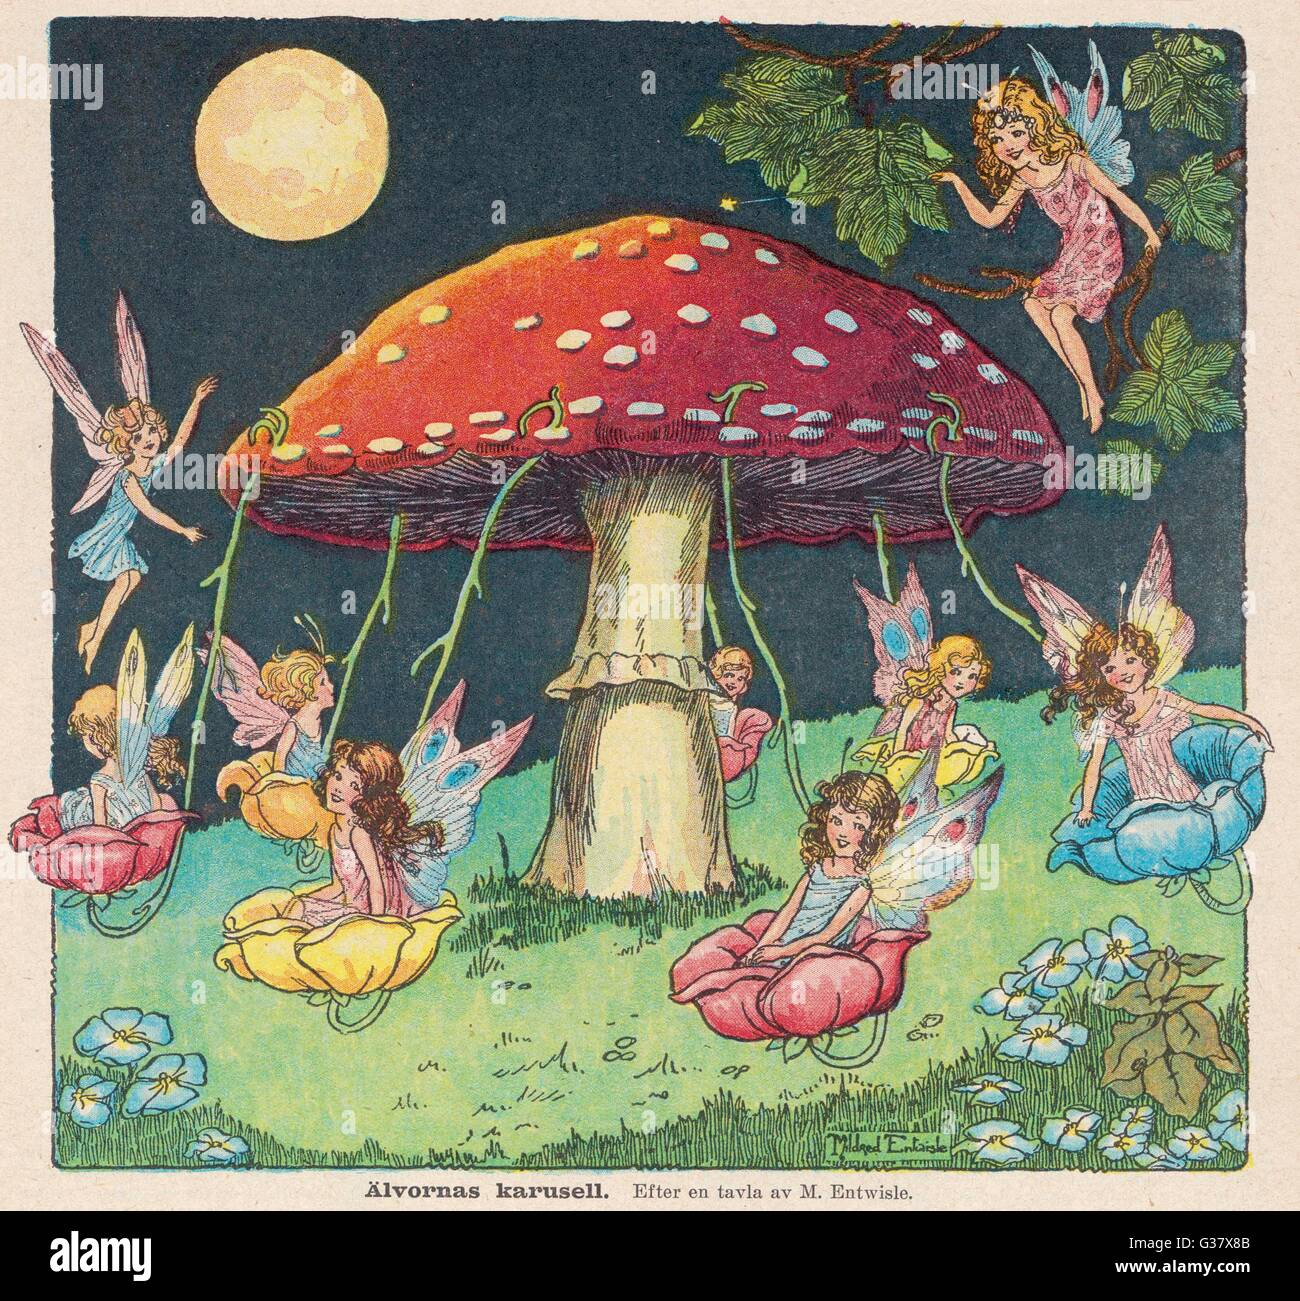 Fairies at play - a toadstool  makes a convenient merry-go- round        Date: 1927 - Stock Image